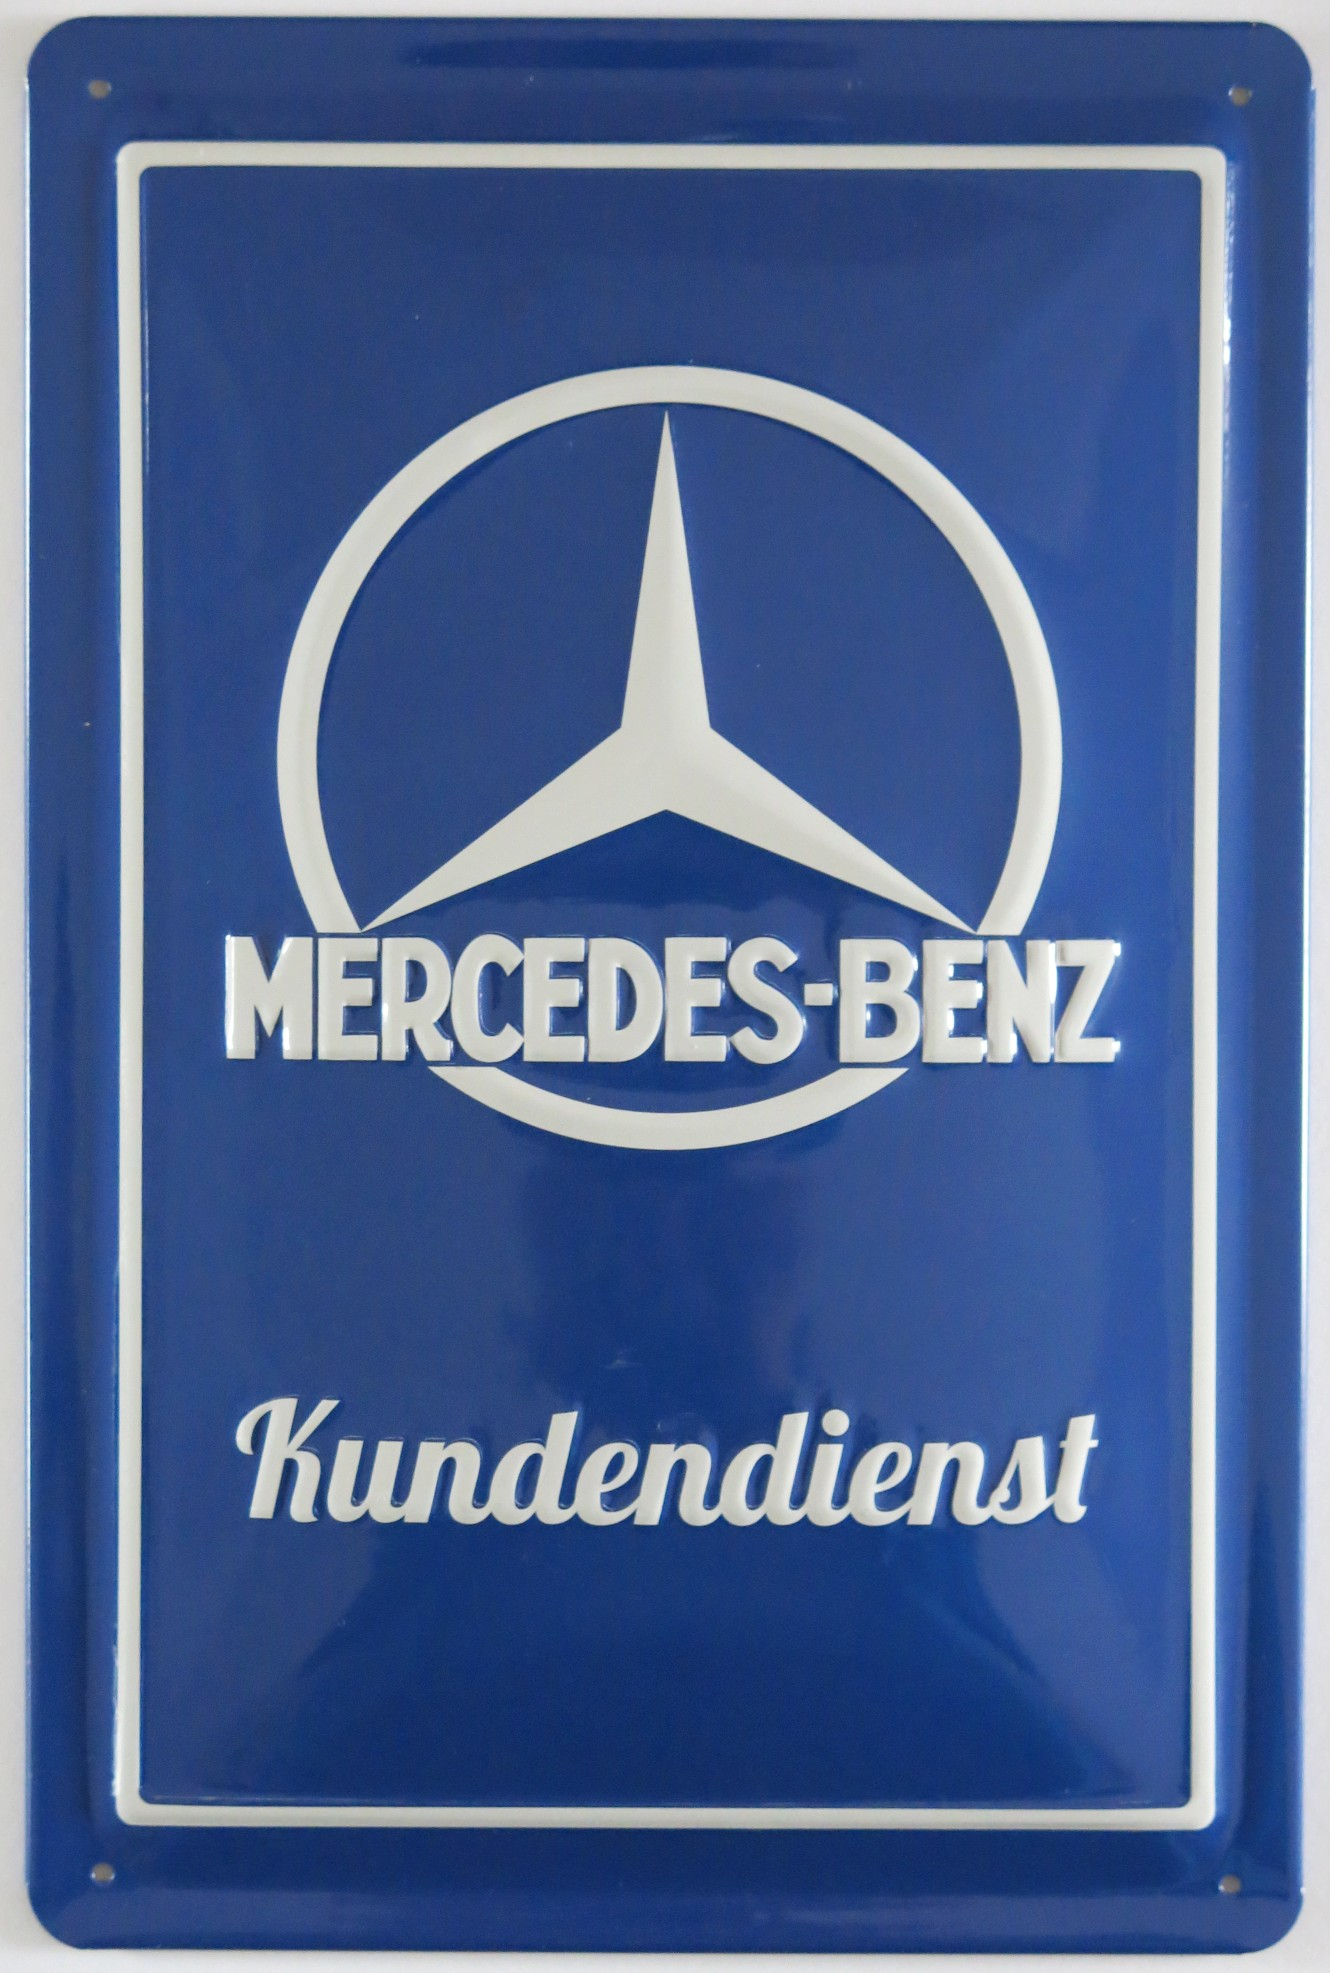 Mercedes service center metal sign ebay for Mercedes benz customer service email address